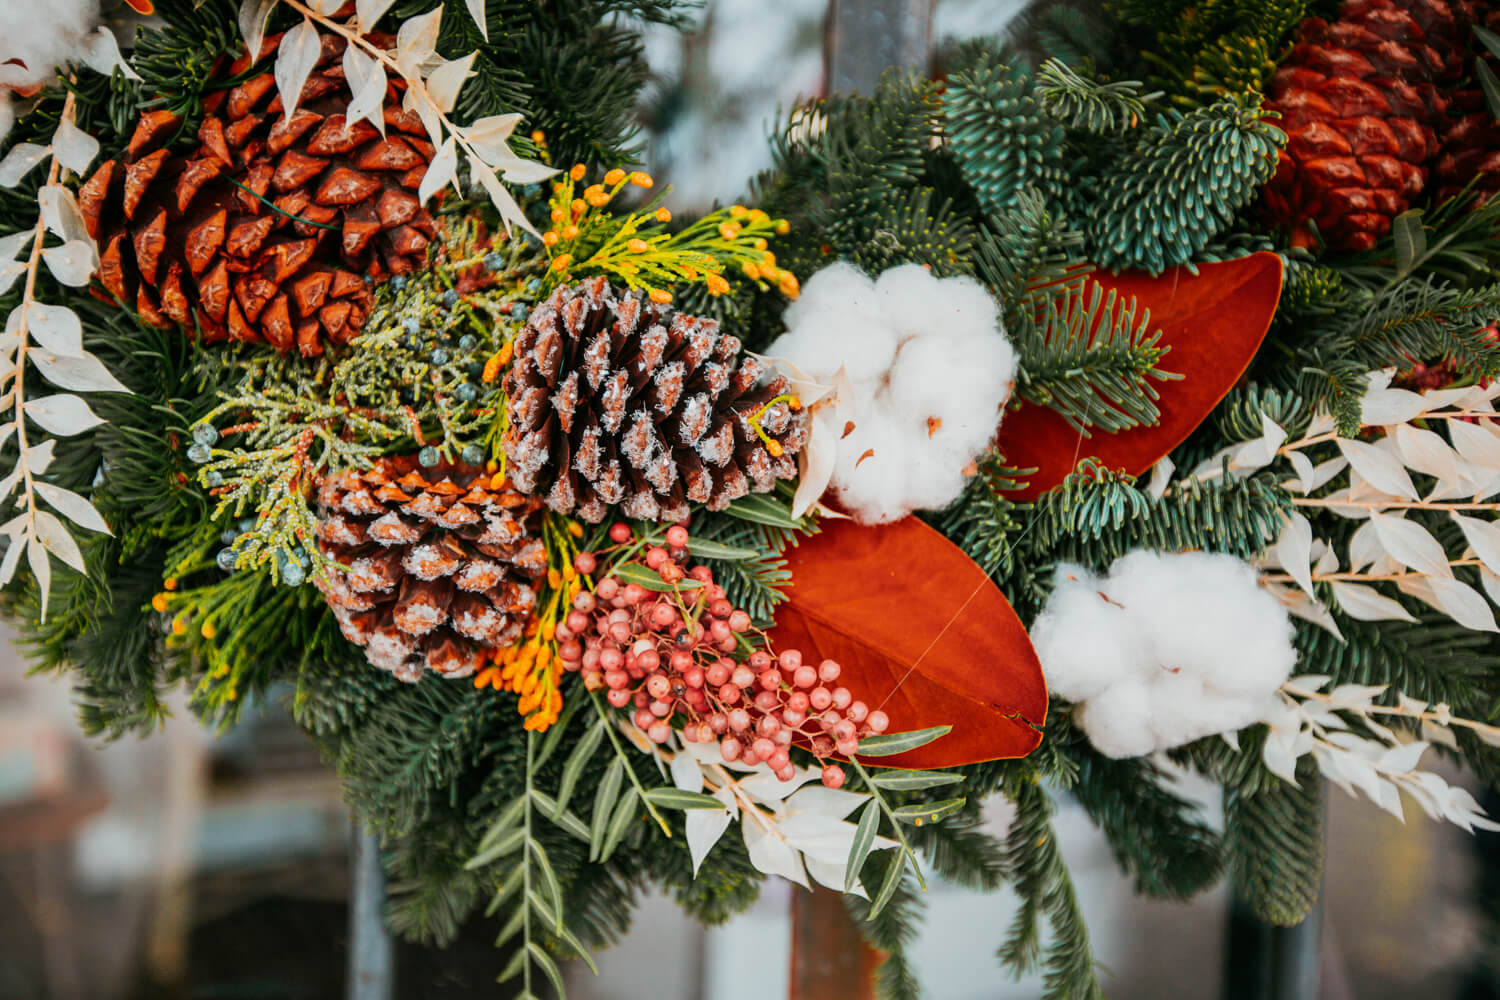 A close up of a wreath decorated with pine cones, berries, and stems sold at Thistle, in Tucson, Arizona